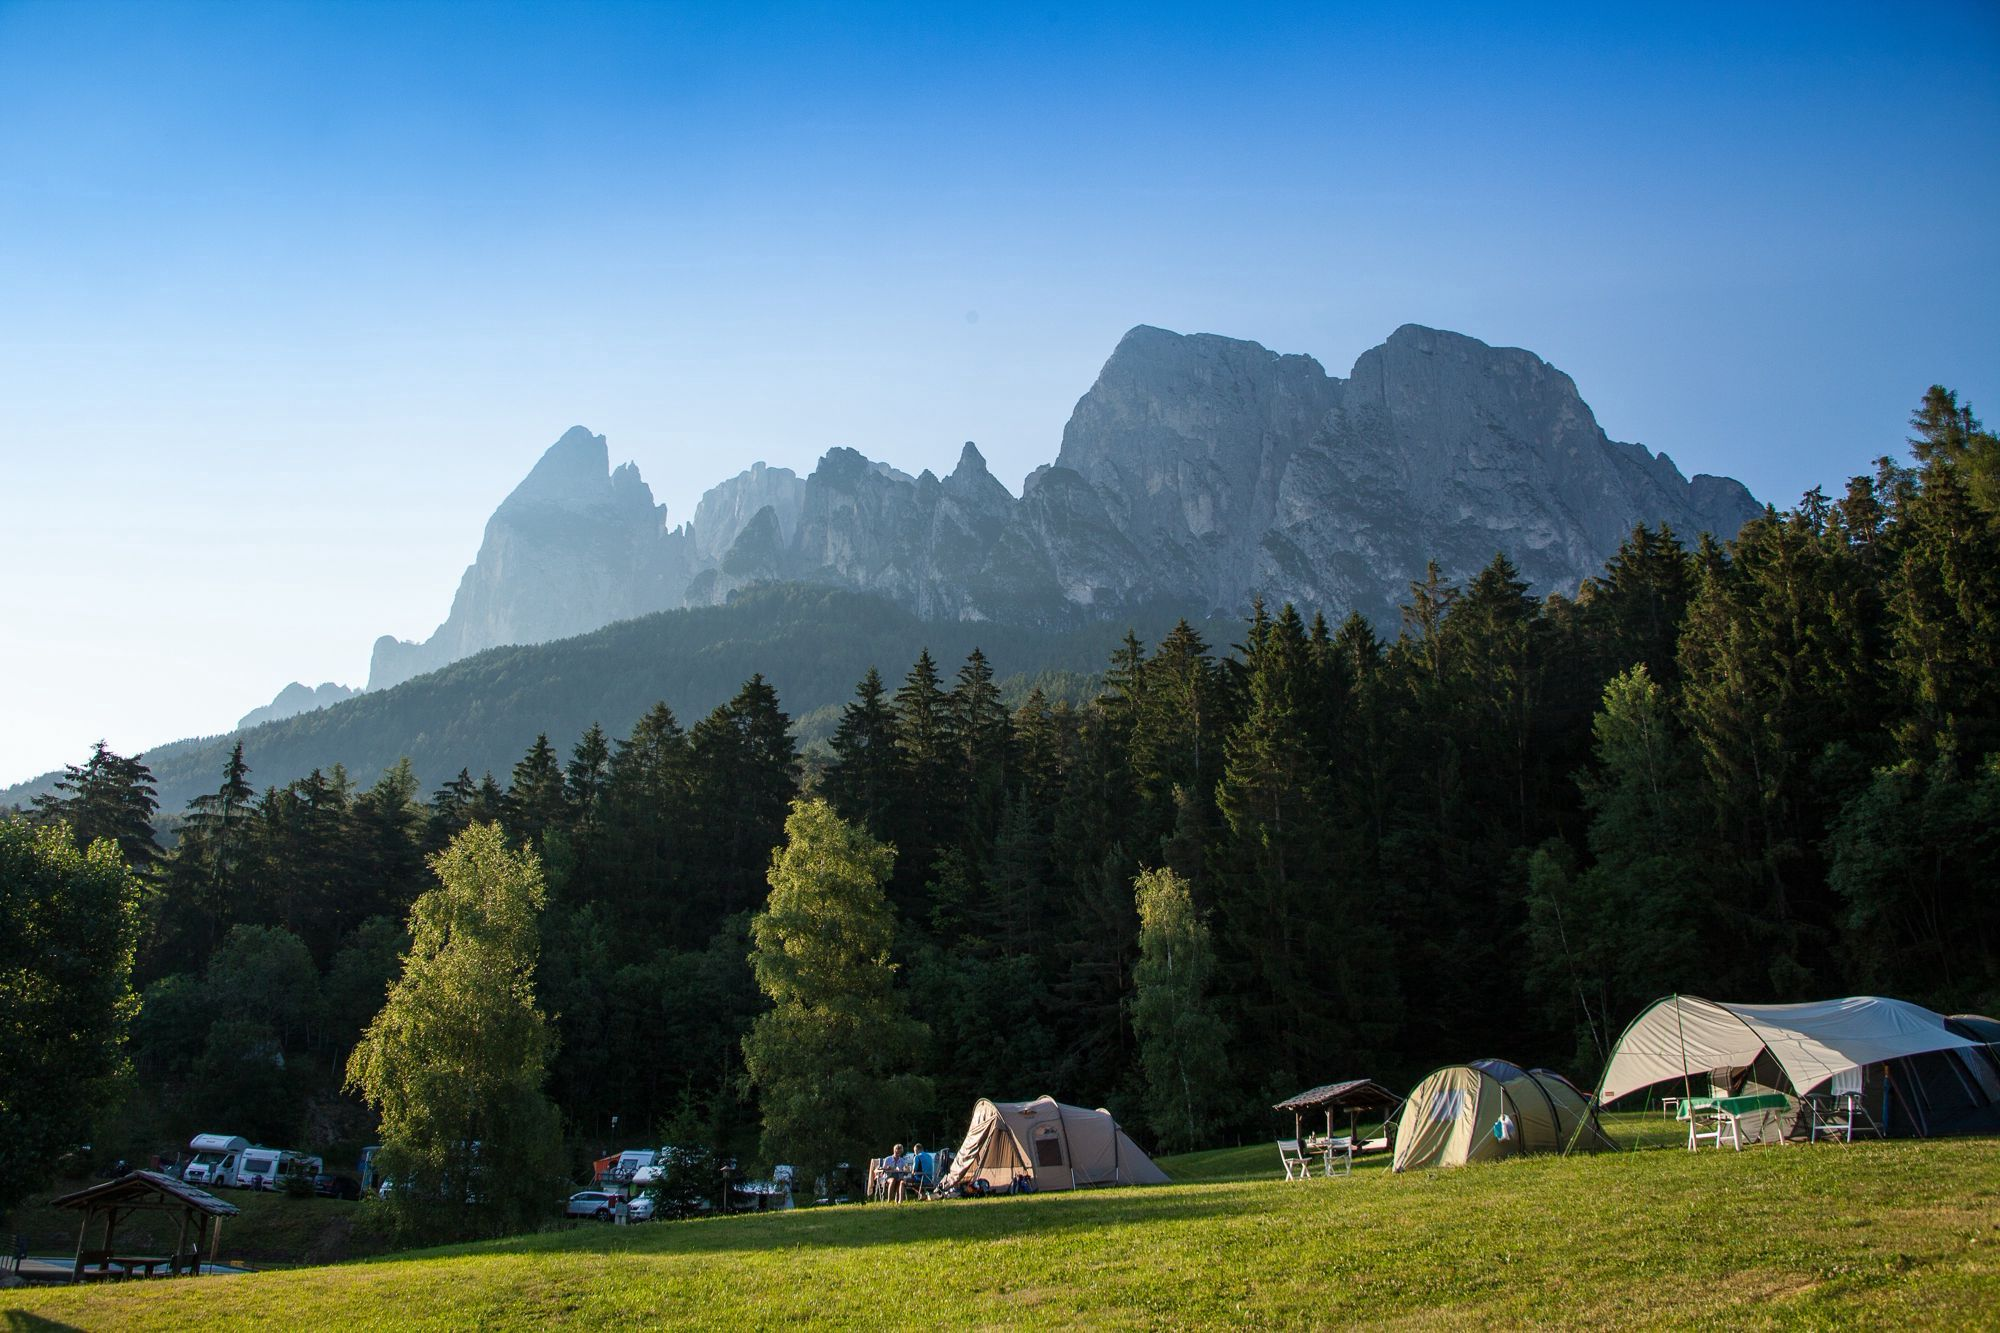 Campsites in the mountains